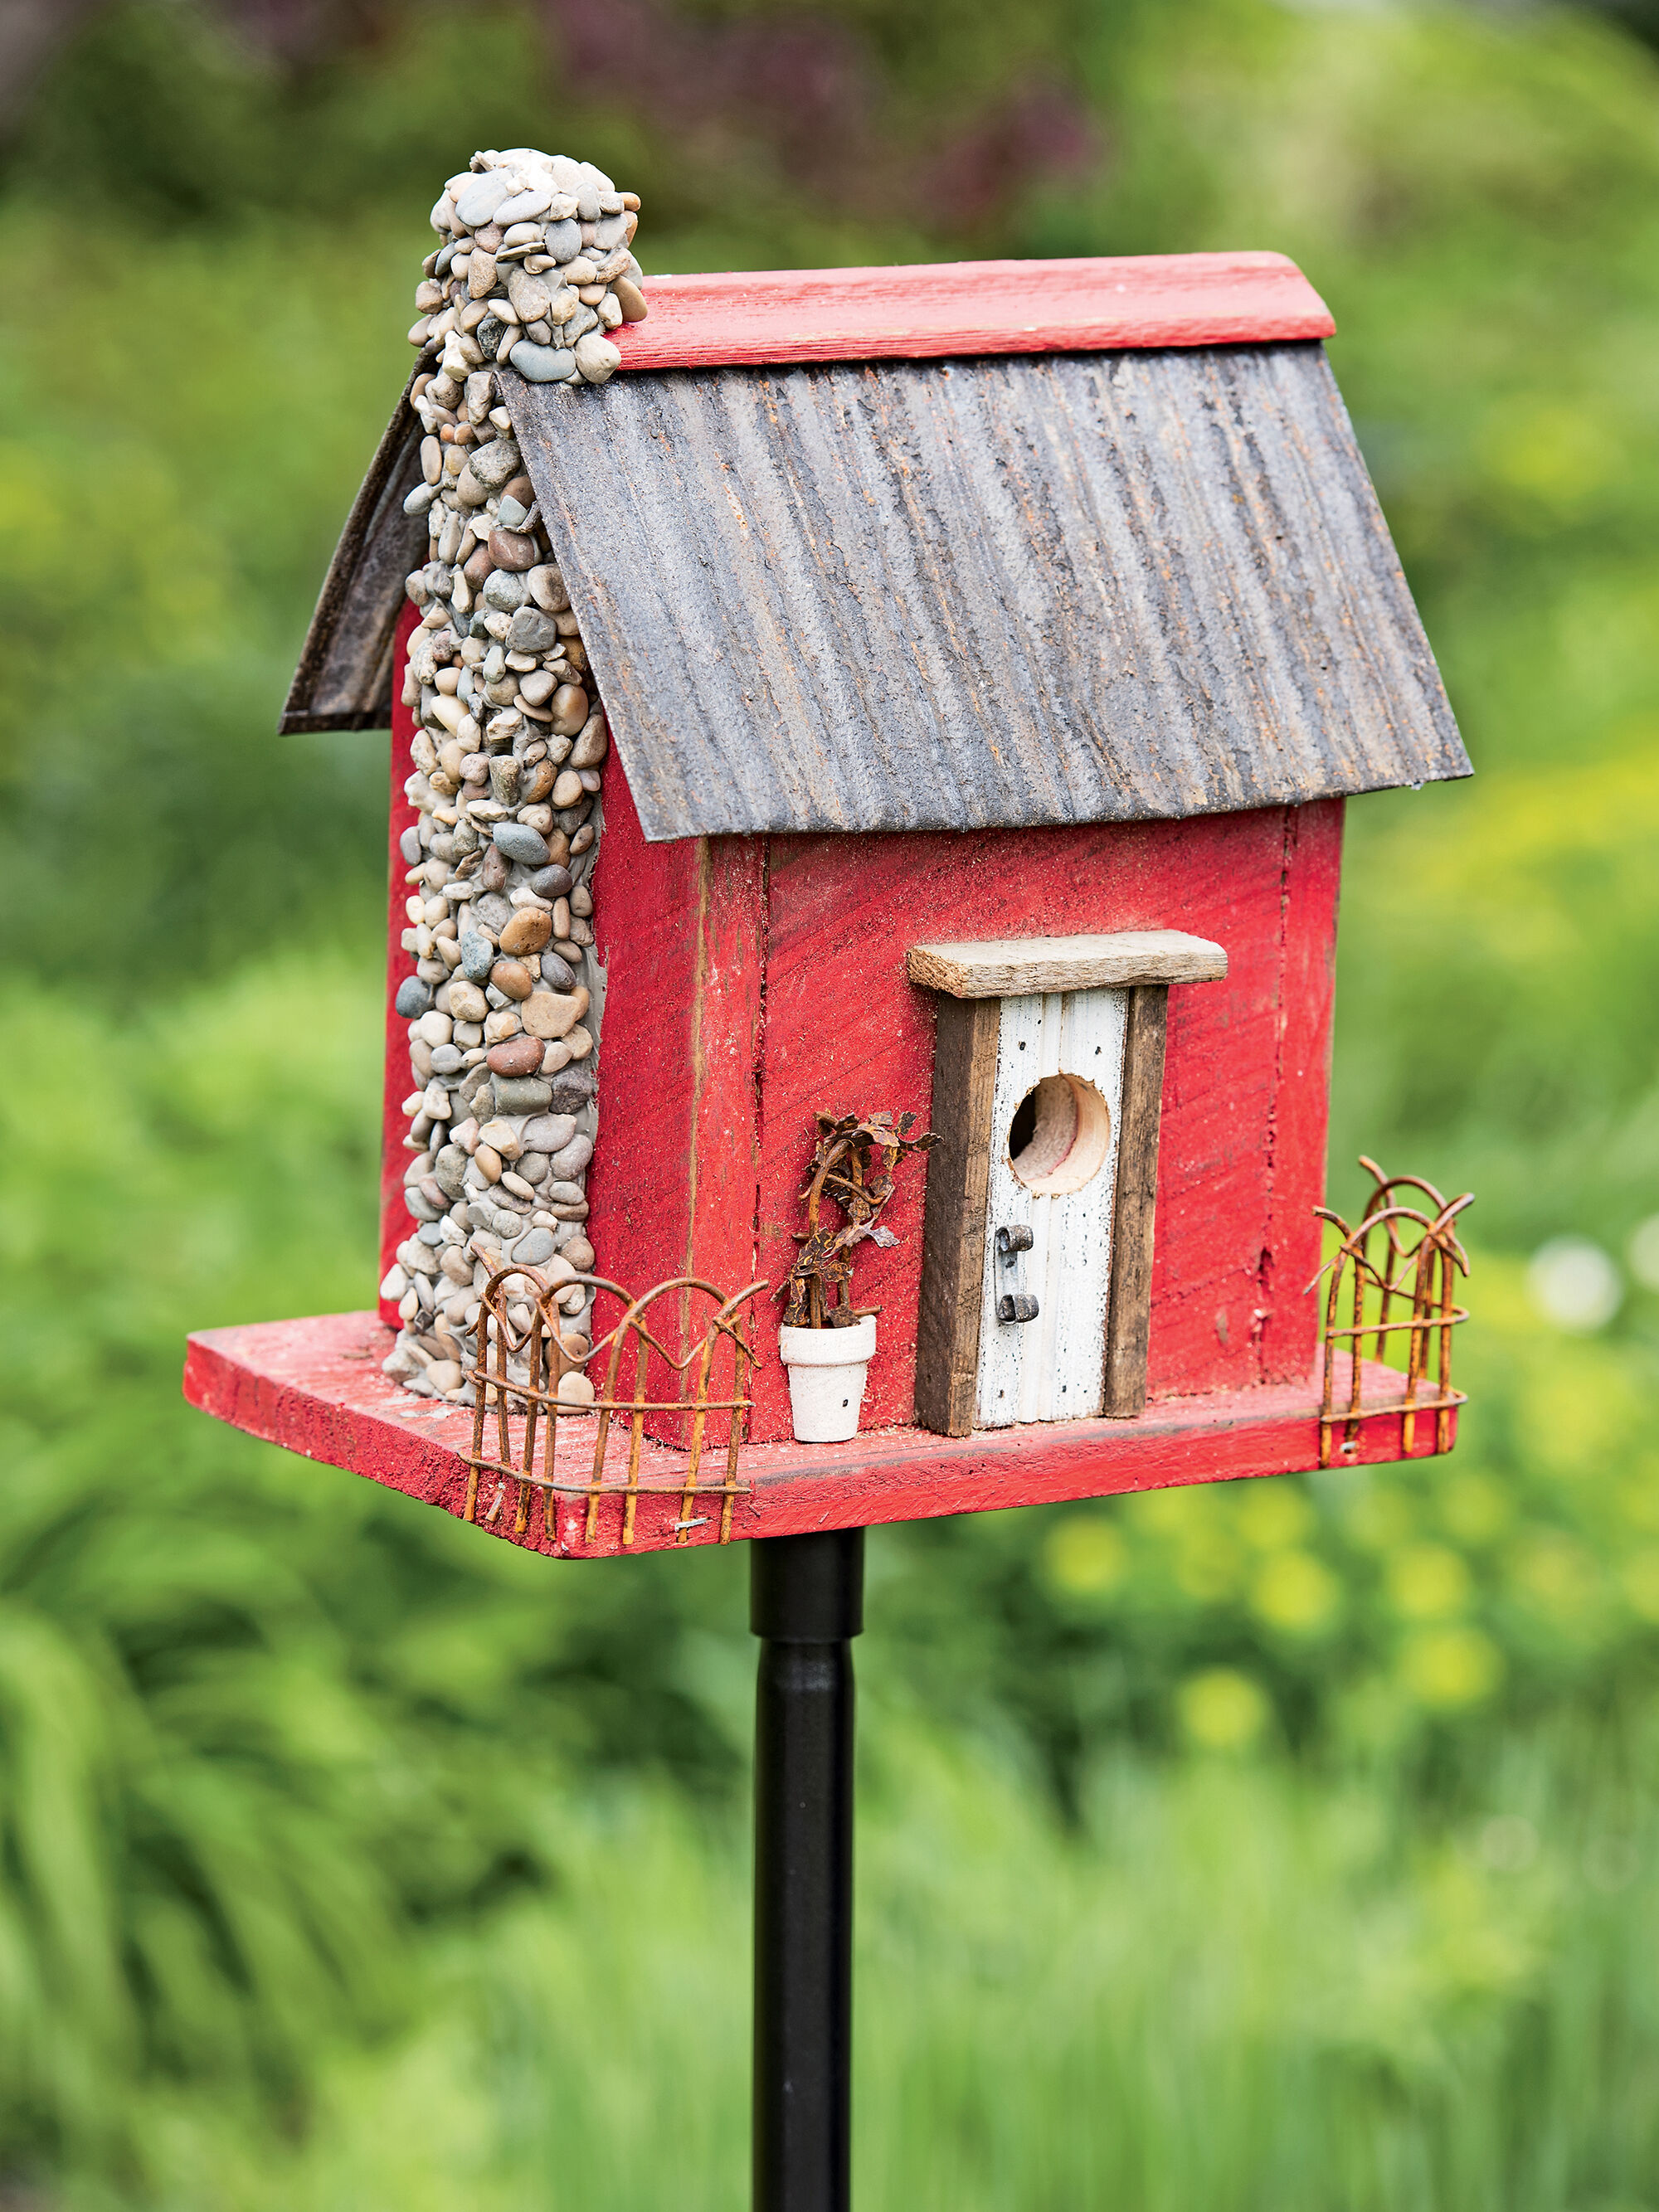 Bamboo habitat collection for butterflies songbirds - Old barn wood bird houses ...